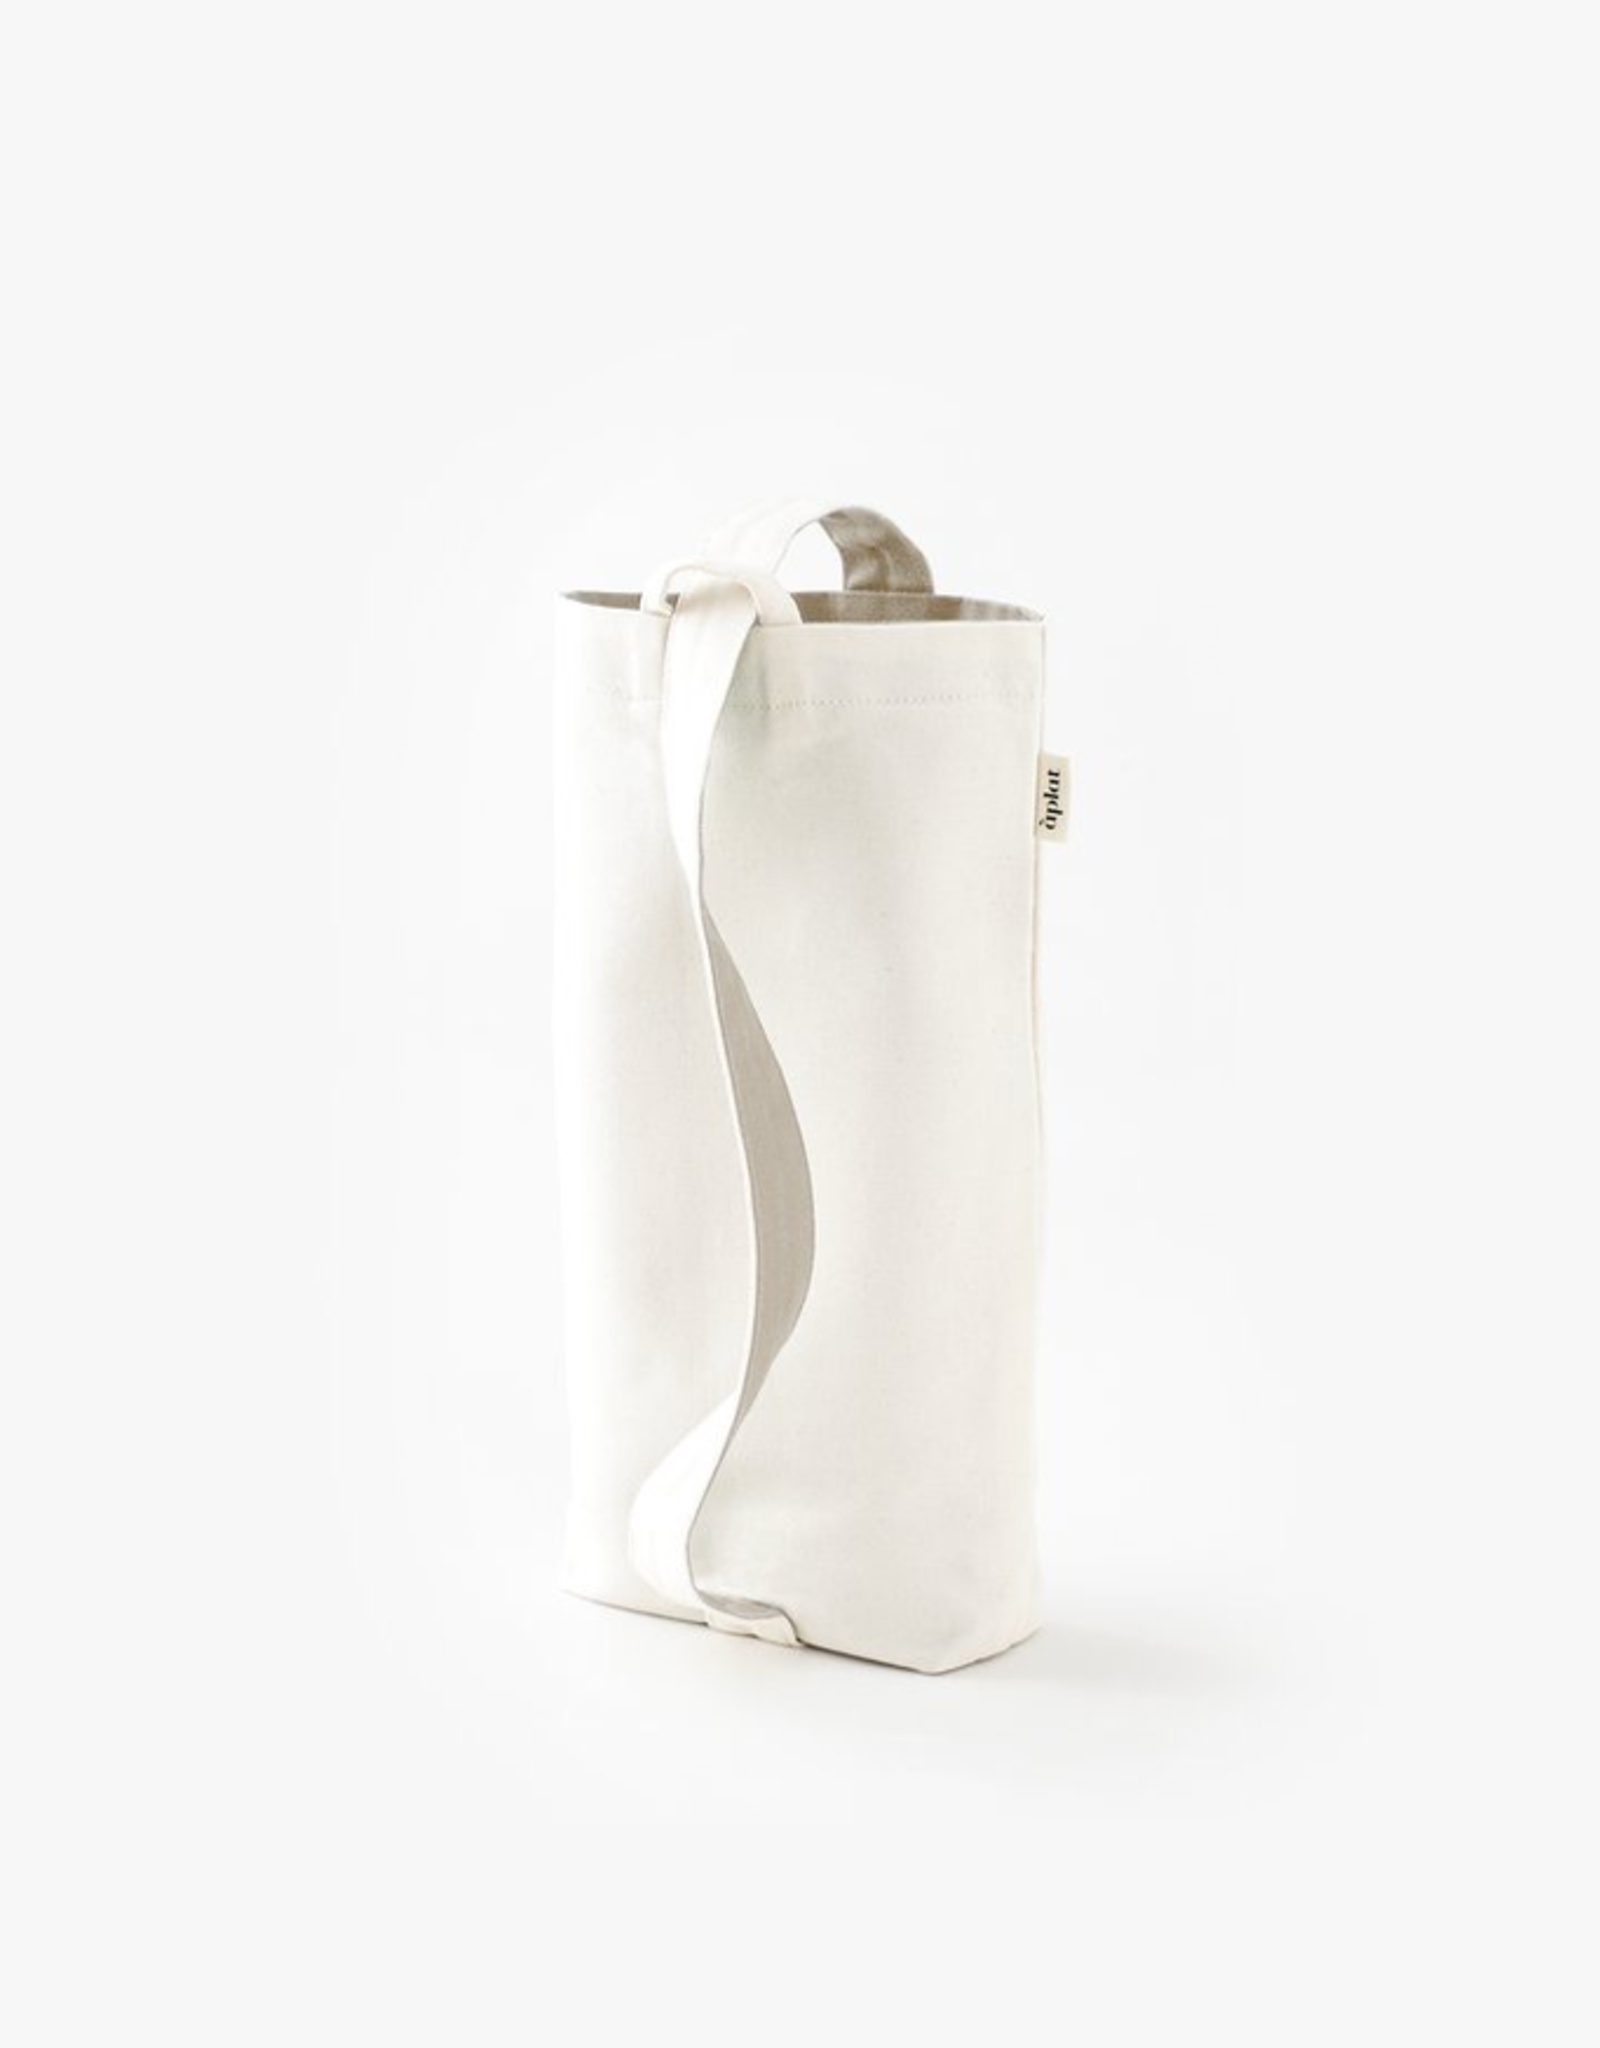 2 Bottle Wine Tote with adjustable strap